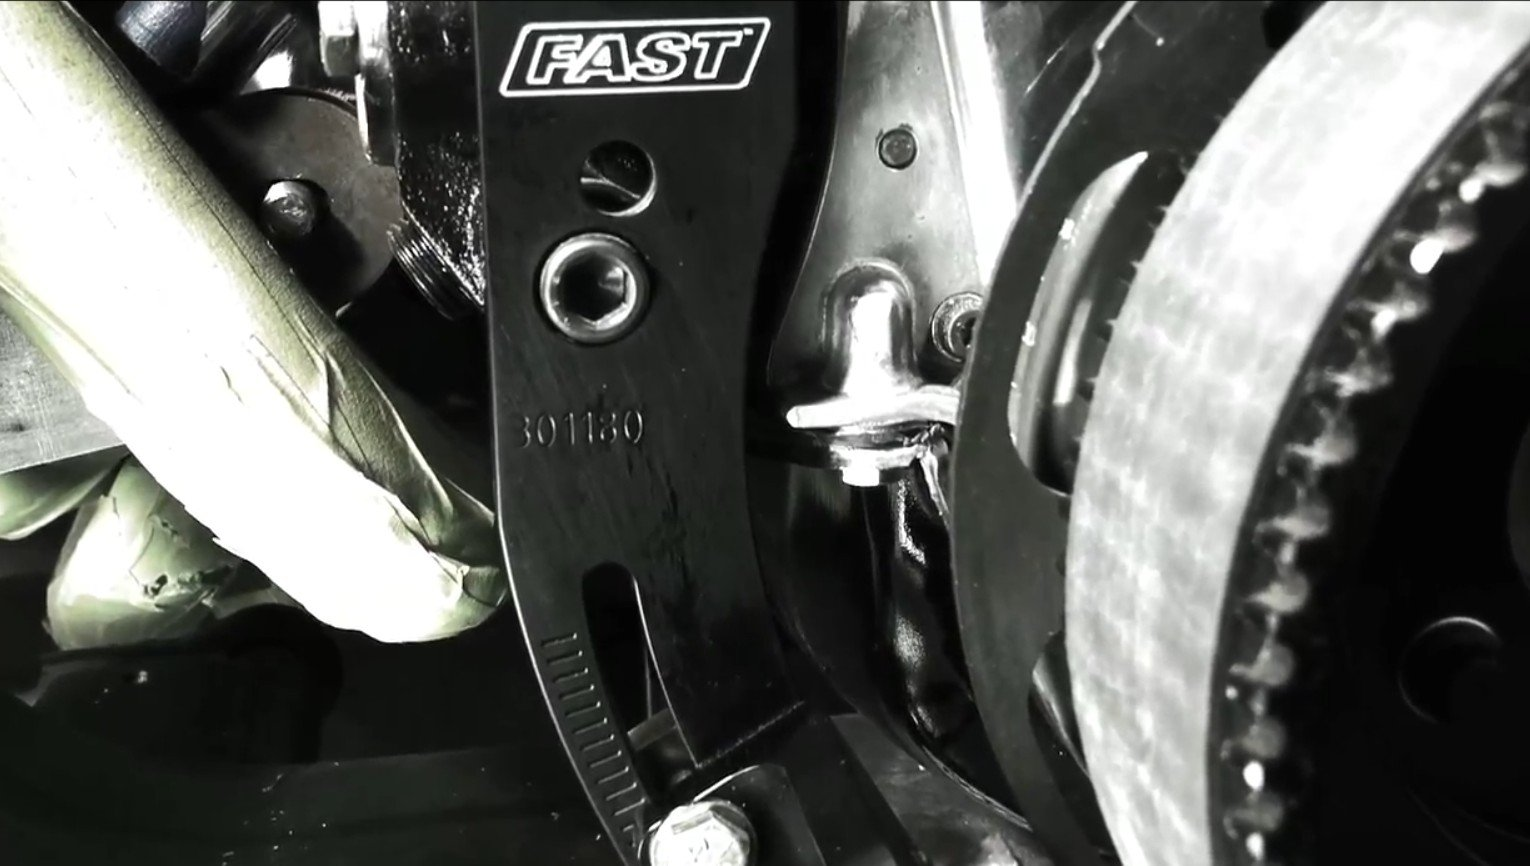 Video: Tech Review of FAST's Ignition Crank Trigger